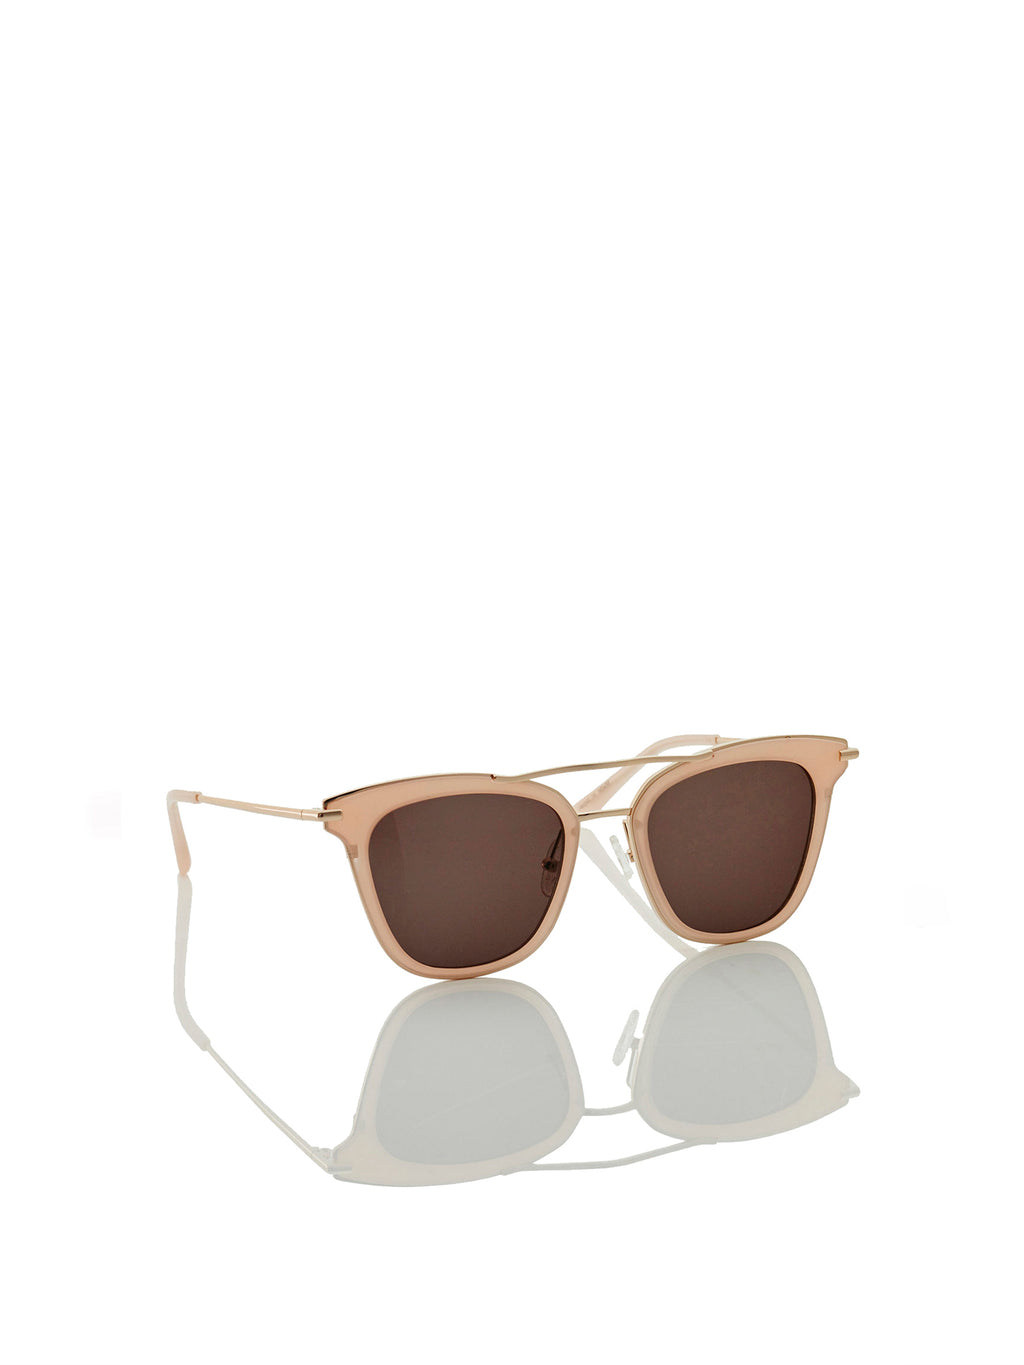 JH Eyewear No. 07  (acetate) petal gold